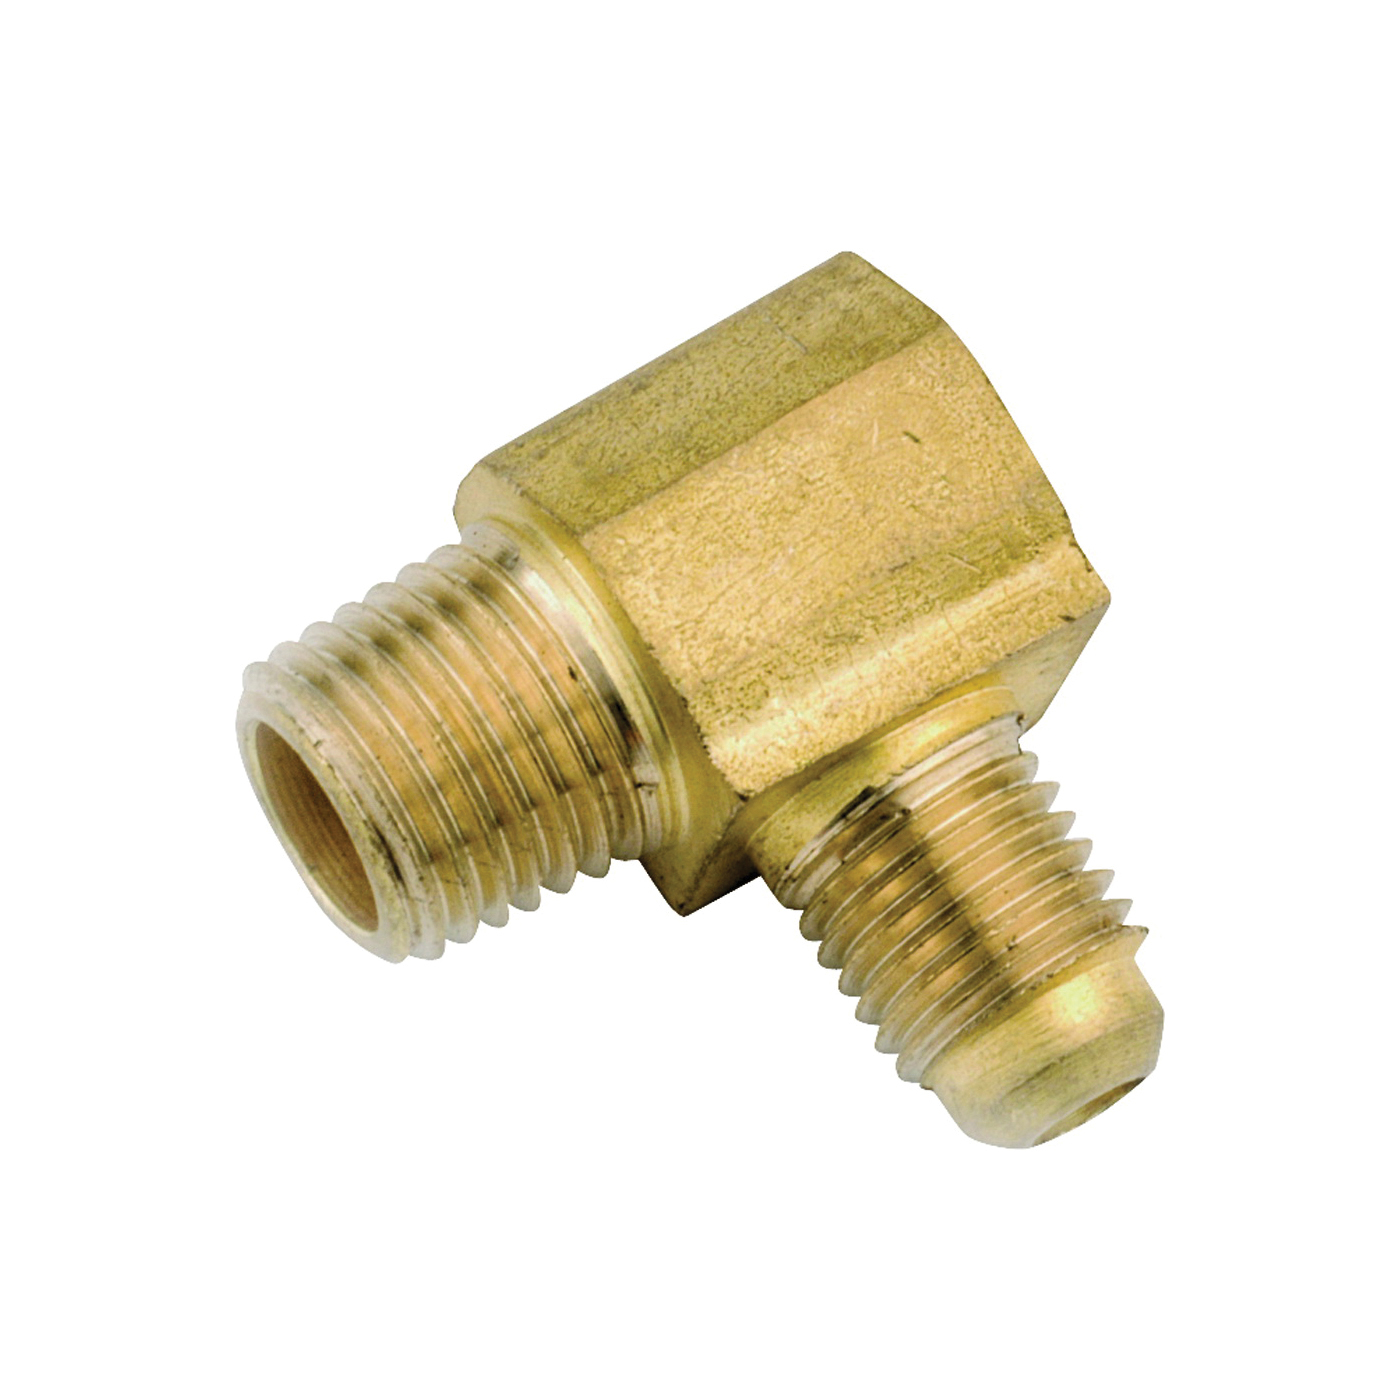 Picture of Anderson Metals 754049-0808 Tube Elbow, 1/2 in, 90 deg Angle, Lead-Free Brass, 750 psi Pressure